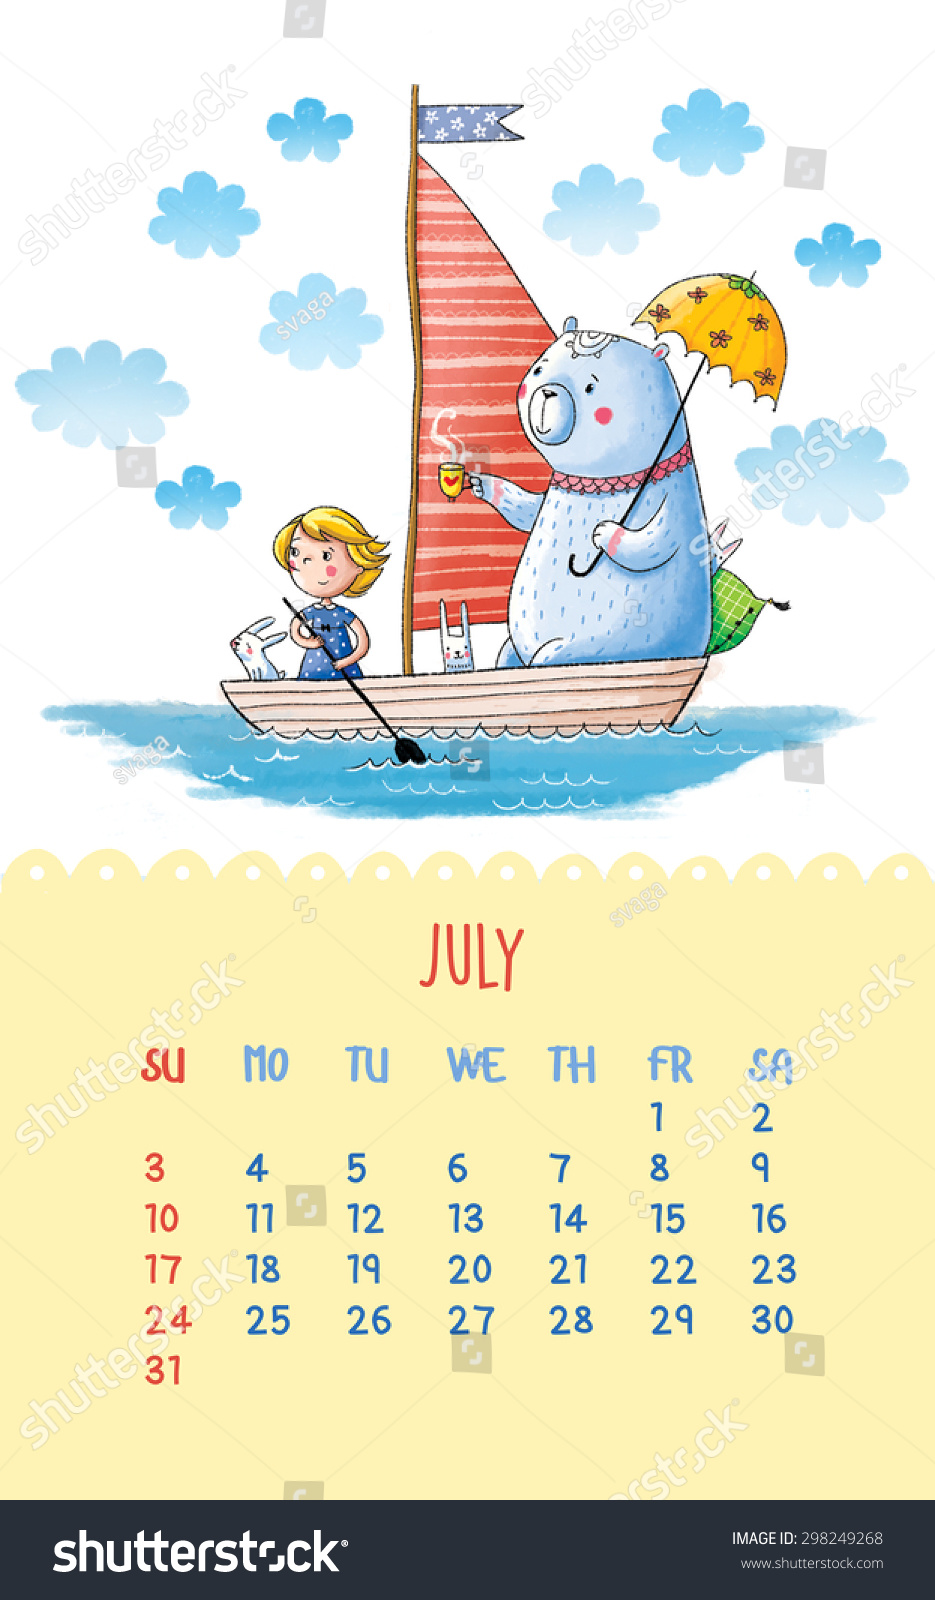 Calendar Illustration Yahoo : Cute calendar for with hand drawing illustration